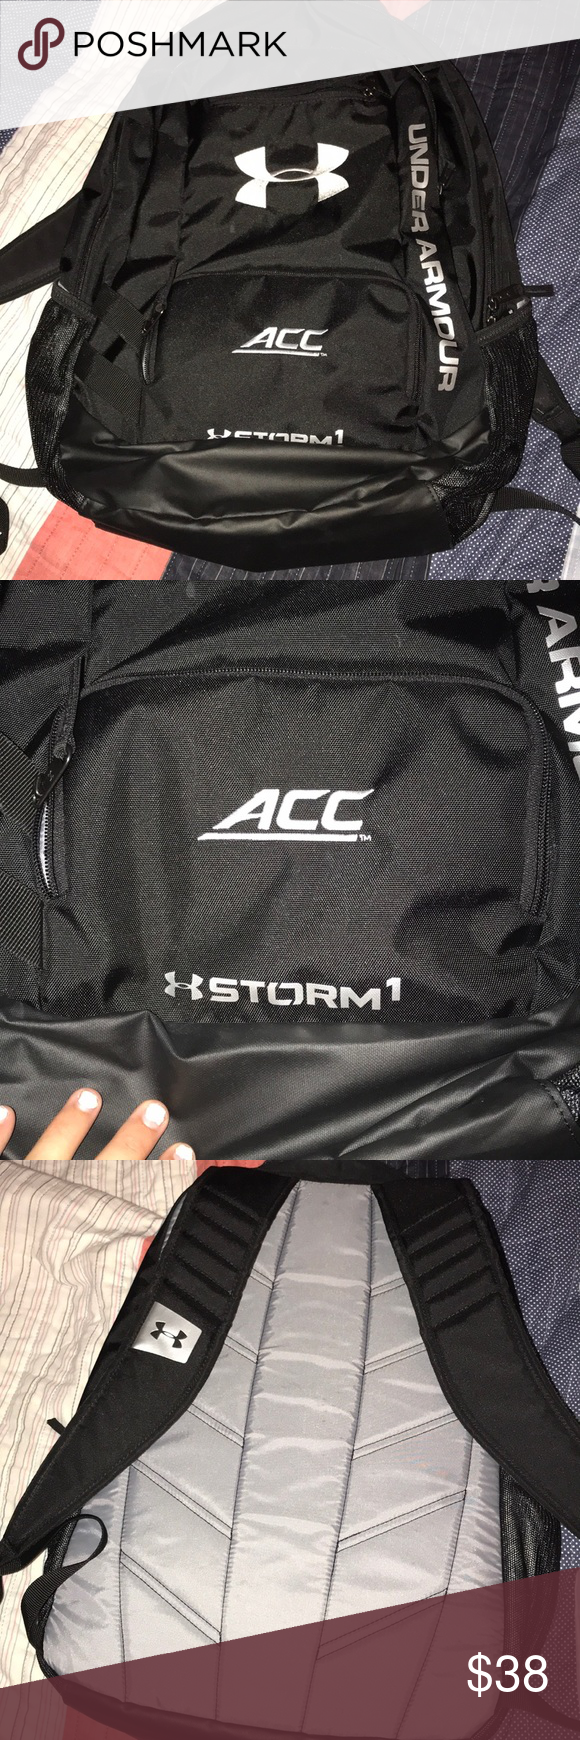 Acc Underarmor Backpack Underarmor Backpack Backpack Brands Under Armor